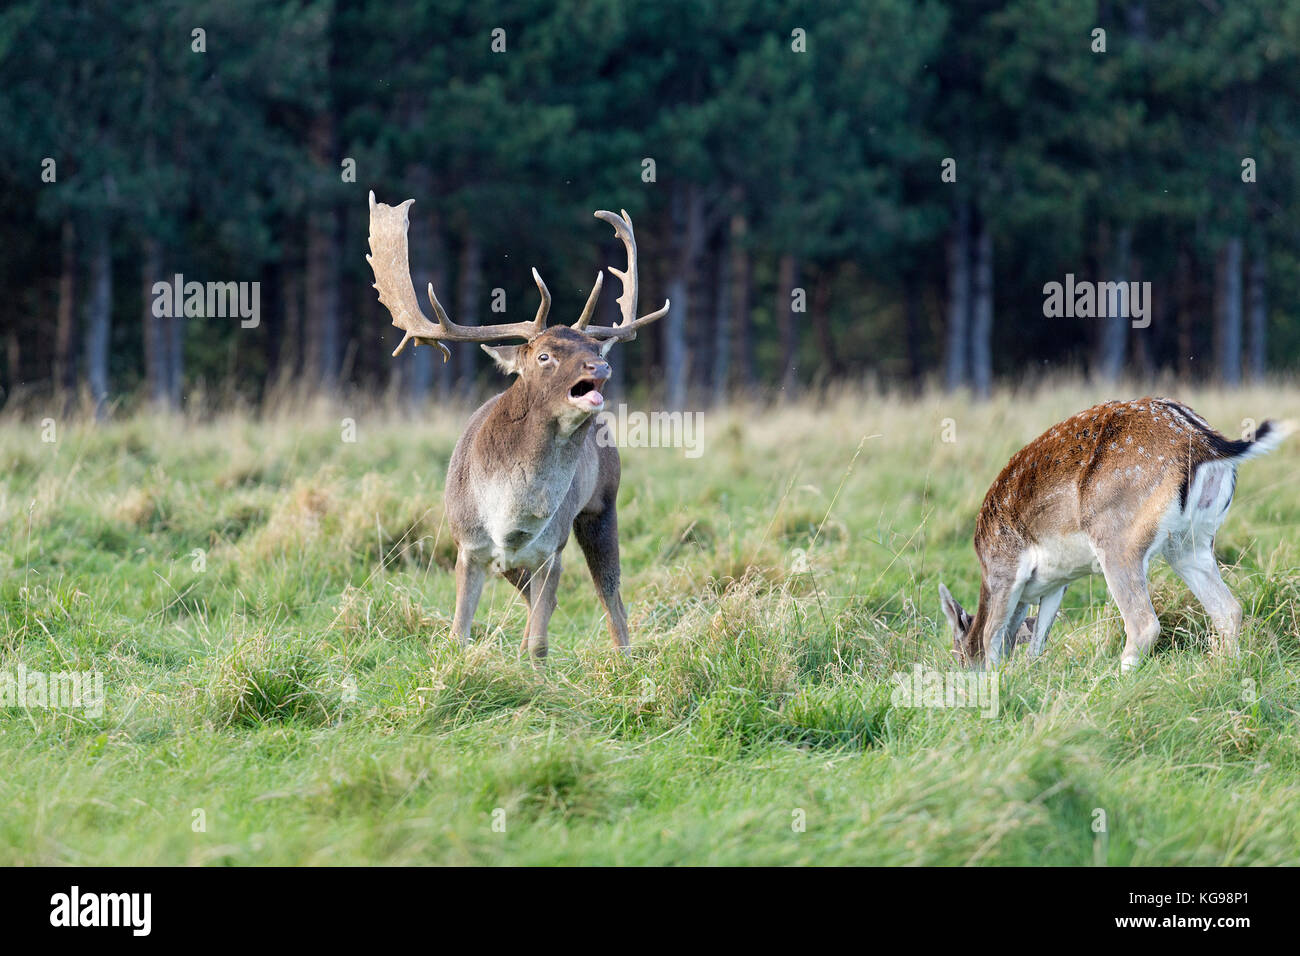 fallow deer (Dama dama) at Phoenix Park, Dublin, Ireland Stock Photo